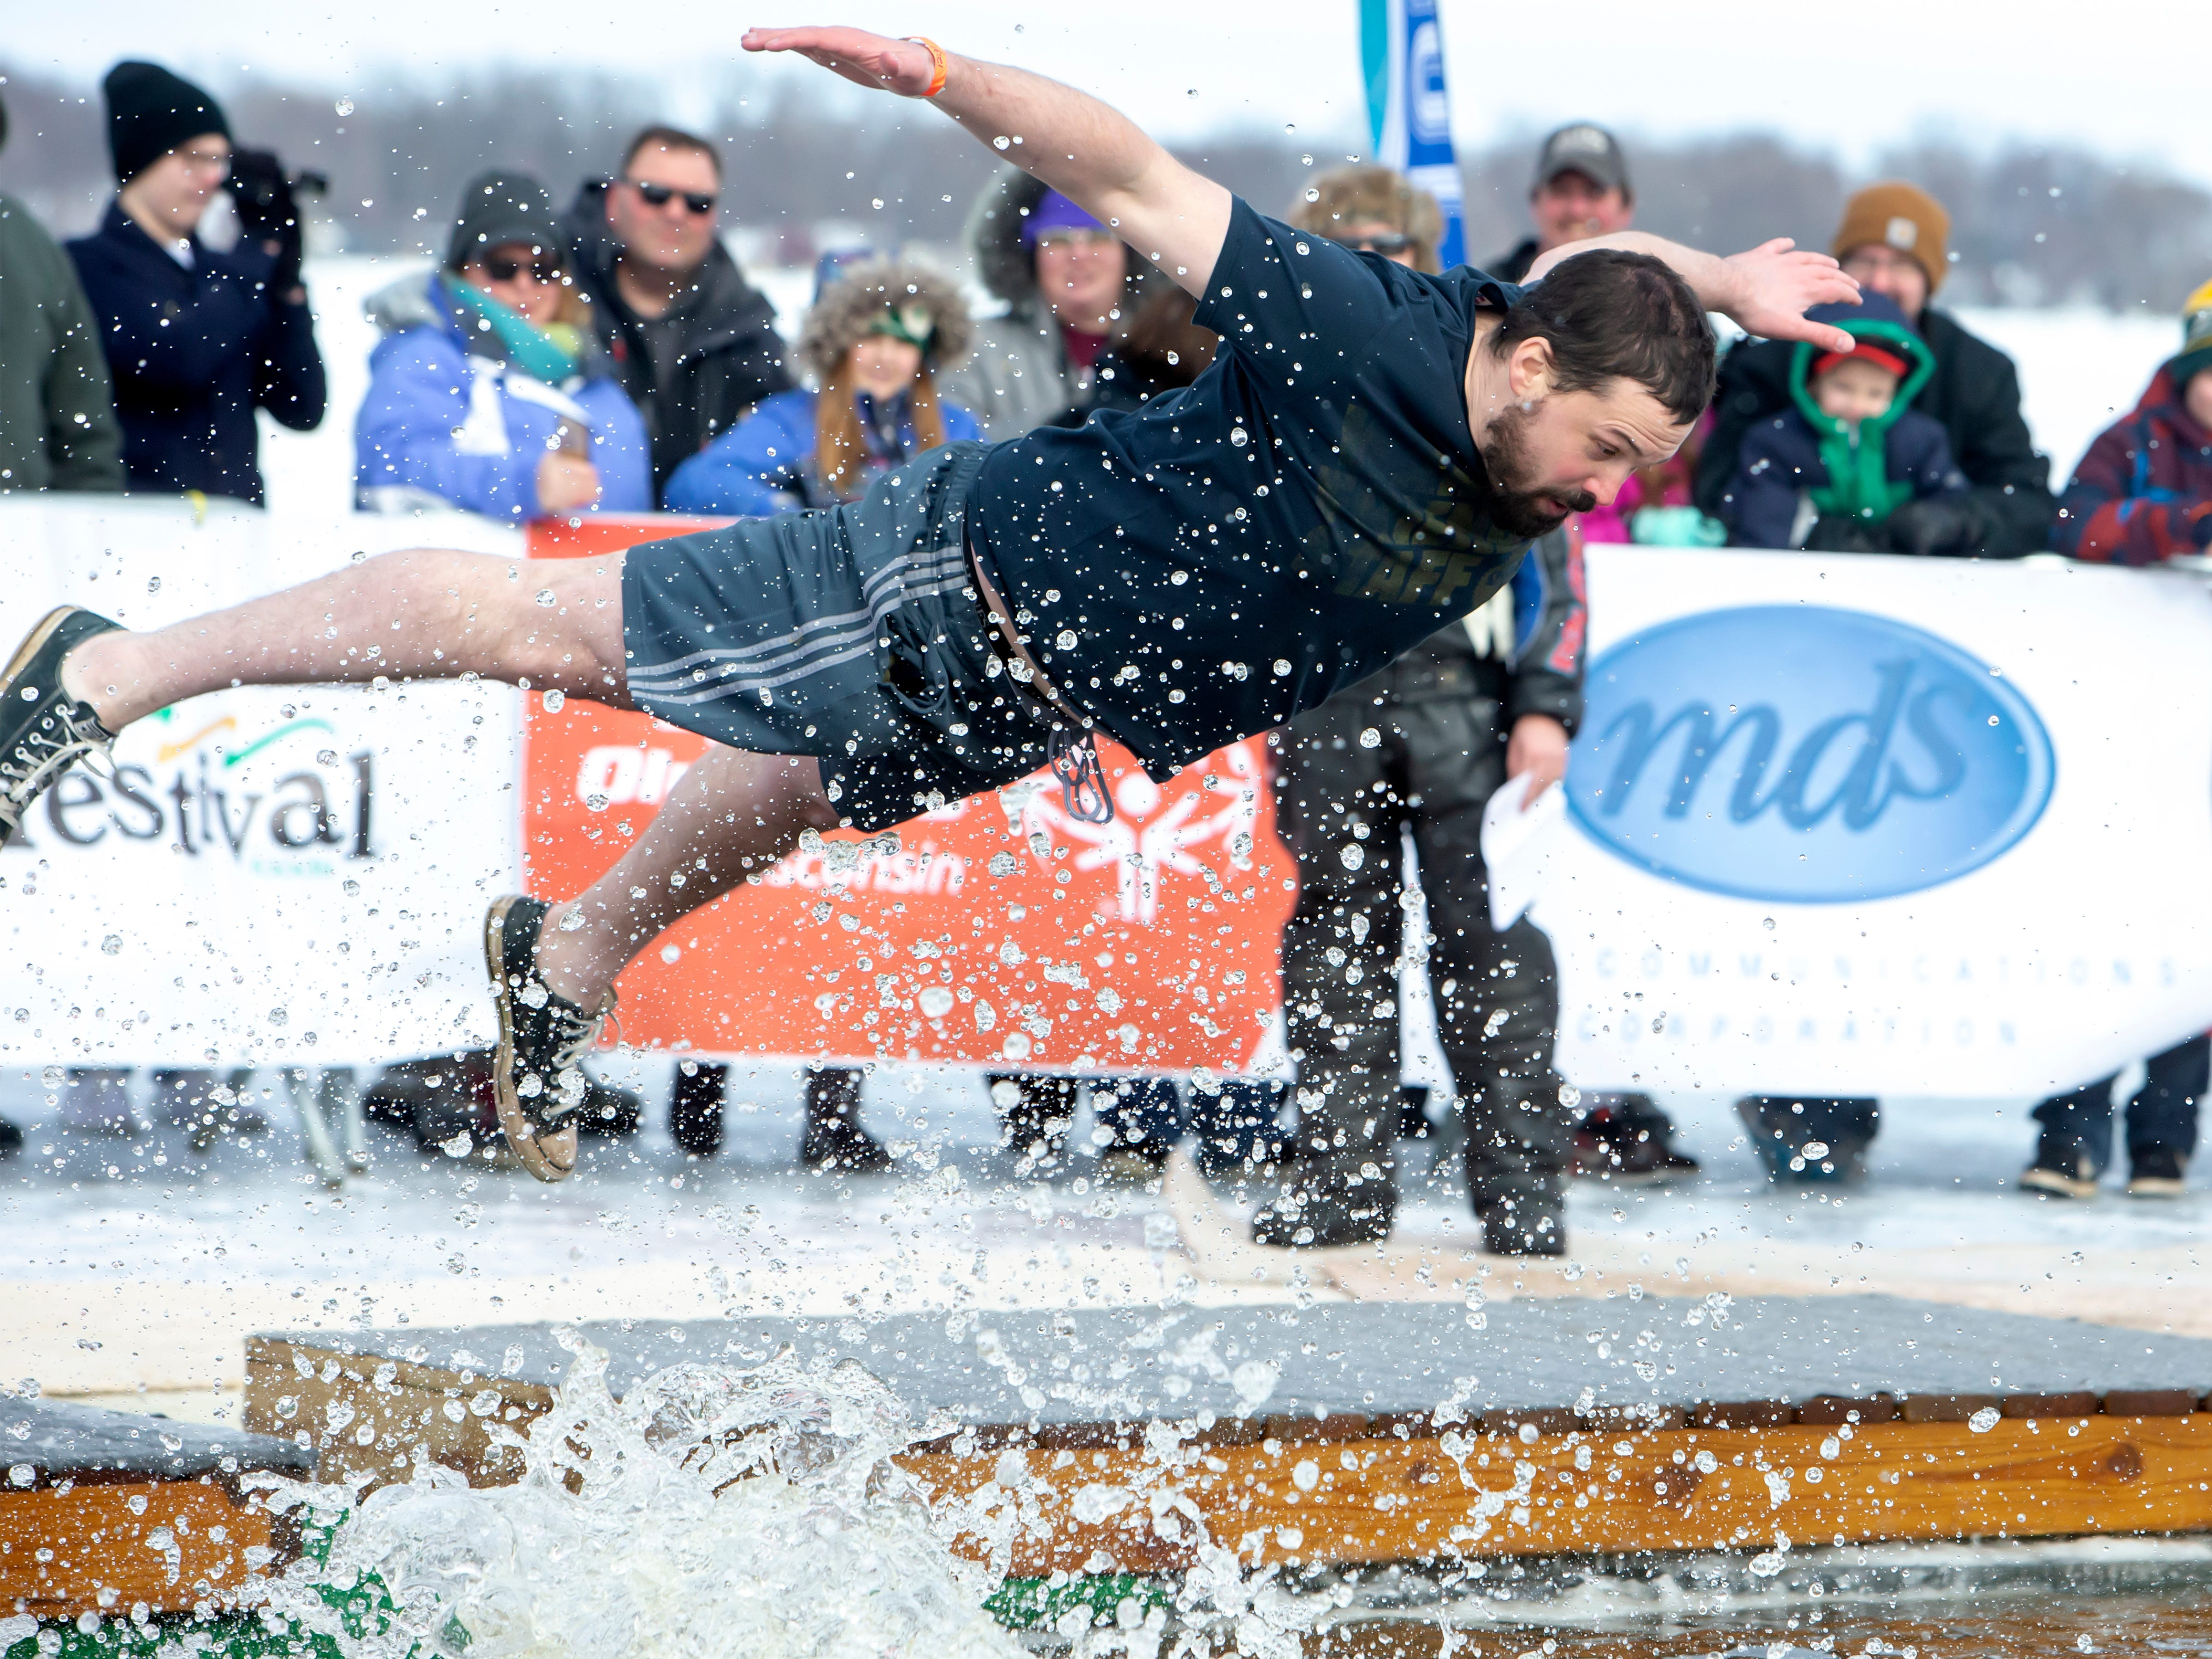 A plunging participant dives into the freezing water during the Special Olympics Wisconsin Polar Plunge in Oshkosh, Wis., on Saturday, February 16, 2019, at Miller's Bay in Menominee Park.